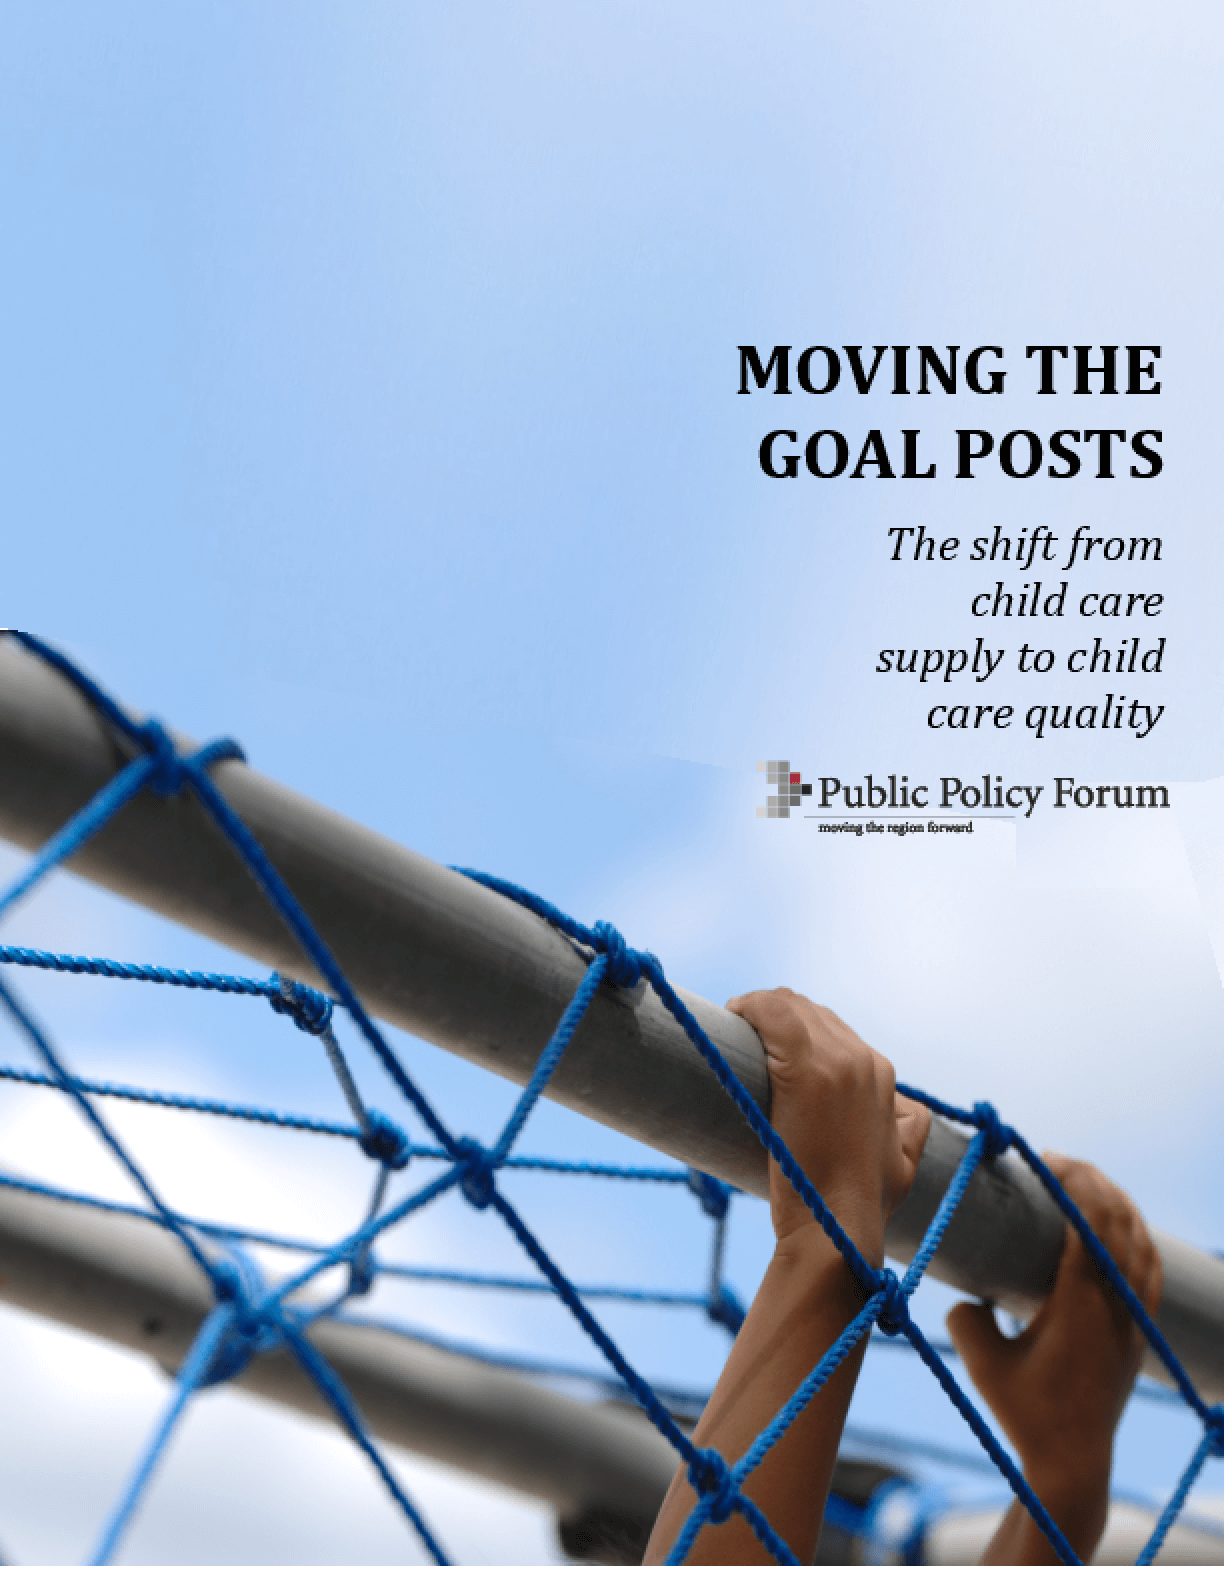 Moving the Goal Posts: The Shift from Child Care Supply to Child Care Quality